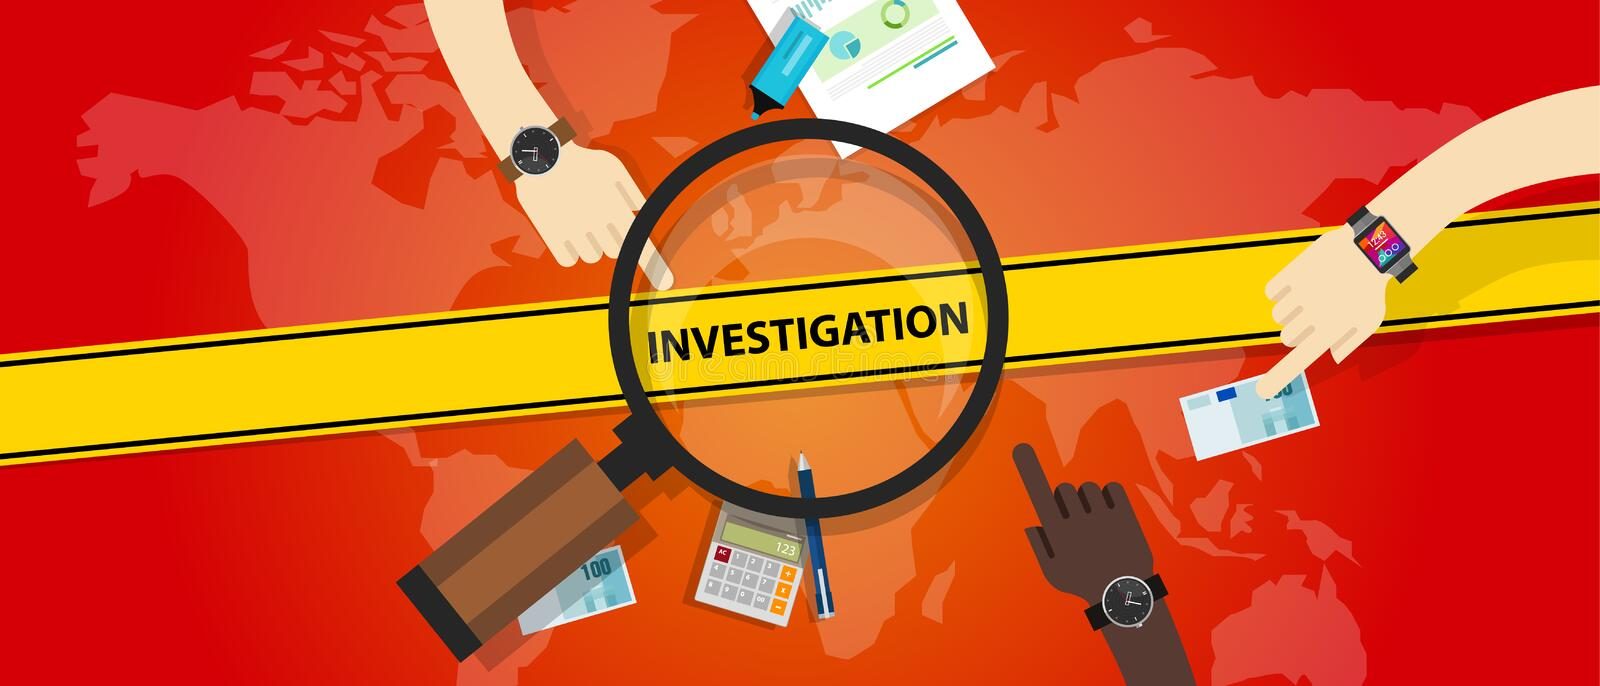 Investigation police yellow line business internet crime royalty free illustration